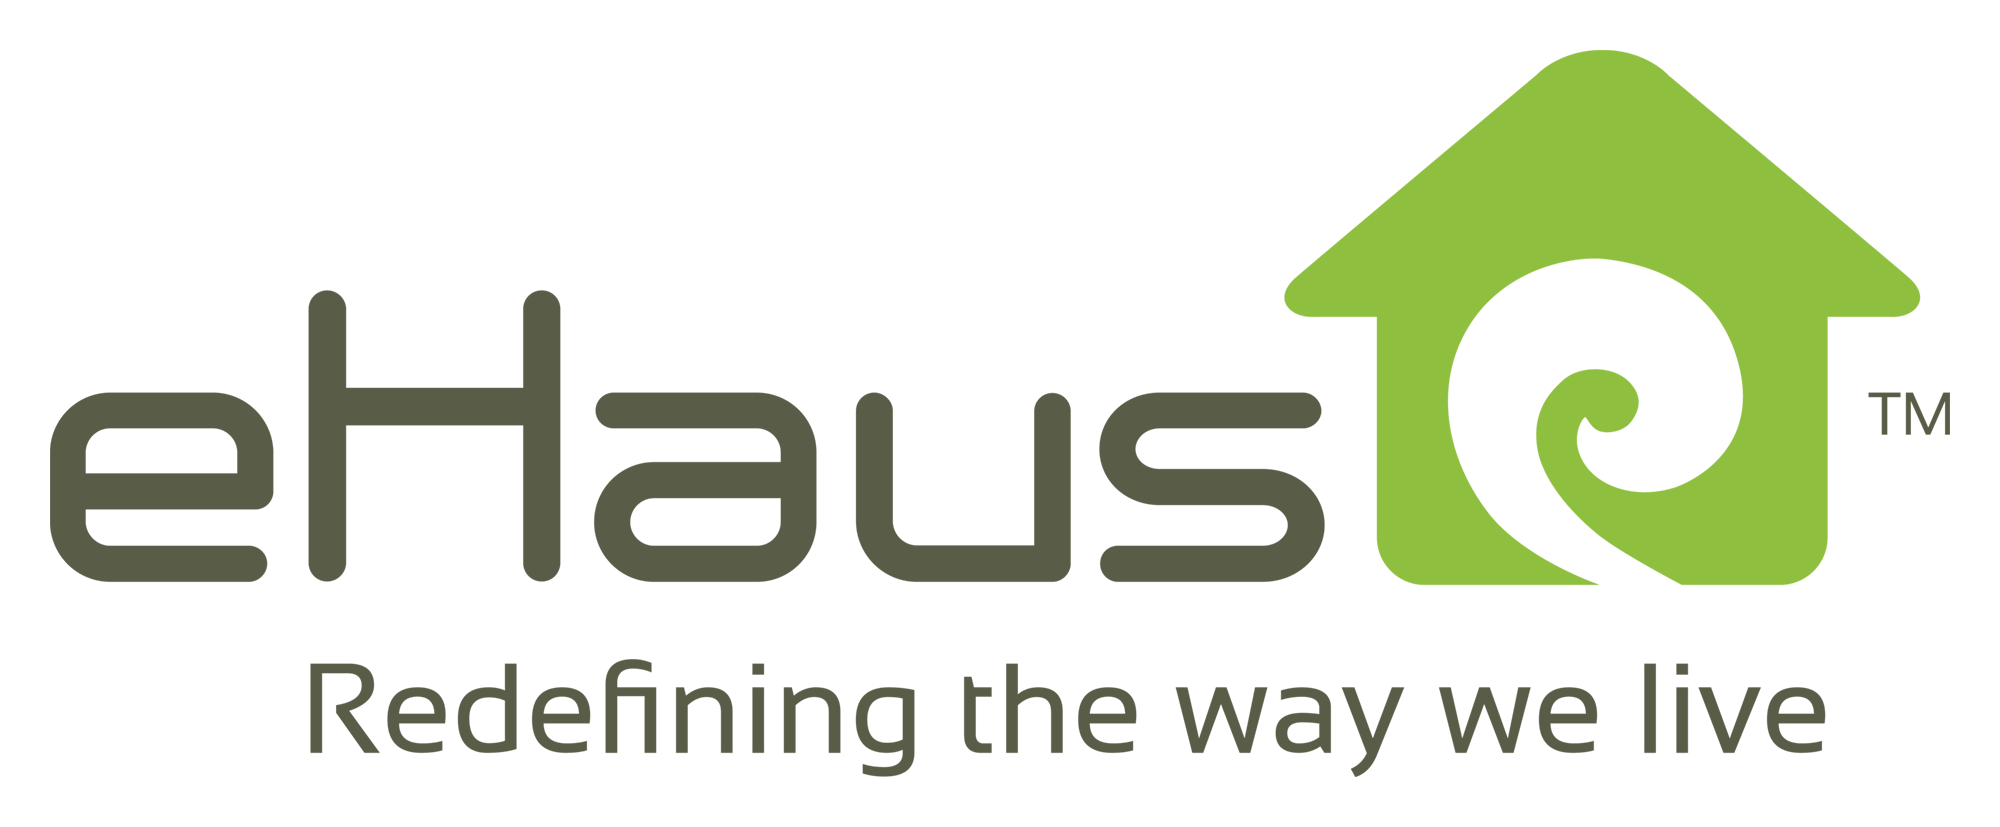 Home Ehaus Nz Leaders In Passive House Design Construction